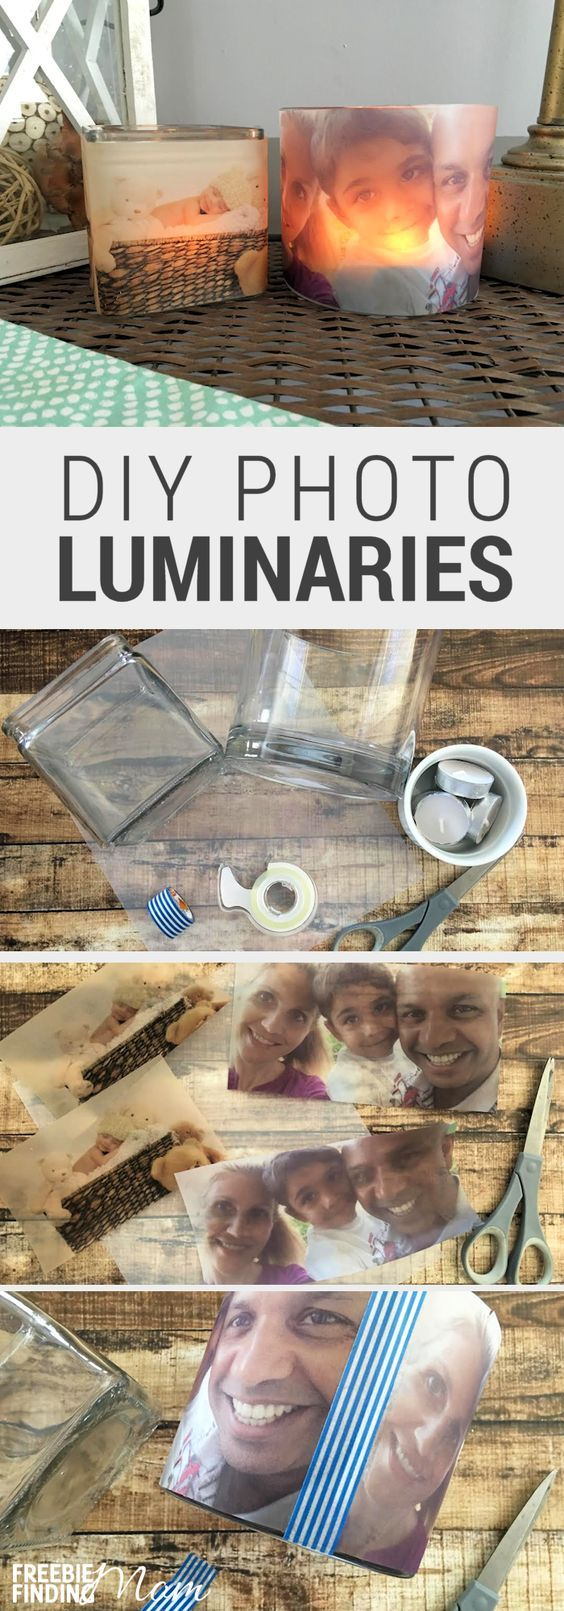 Need an easy, inexpensive and thoughtful DIY gift idea? These glowing photo luminaries are perfect for Mother's Day, Father's Day, Grandparent's Day, Valentine's Day, or just to show someone you care and are thinking of them. Homemade photo gifts are not only great gift ideas for moms, dads, grandparents, and friends, they can also serve as pretty DIY décor in your own home (i.e. centerpieces).